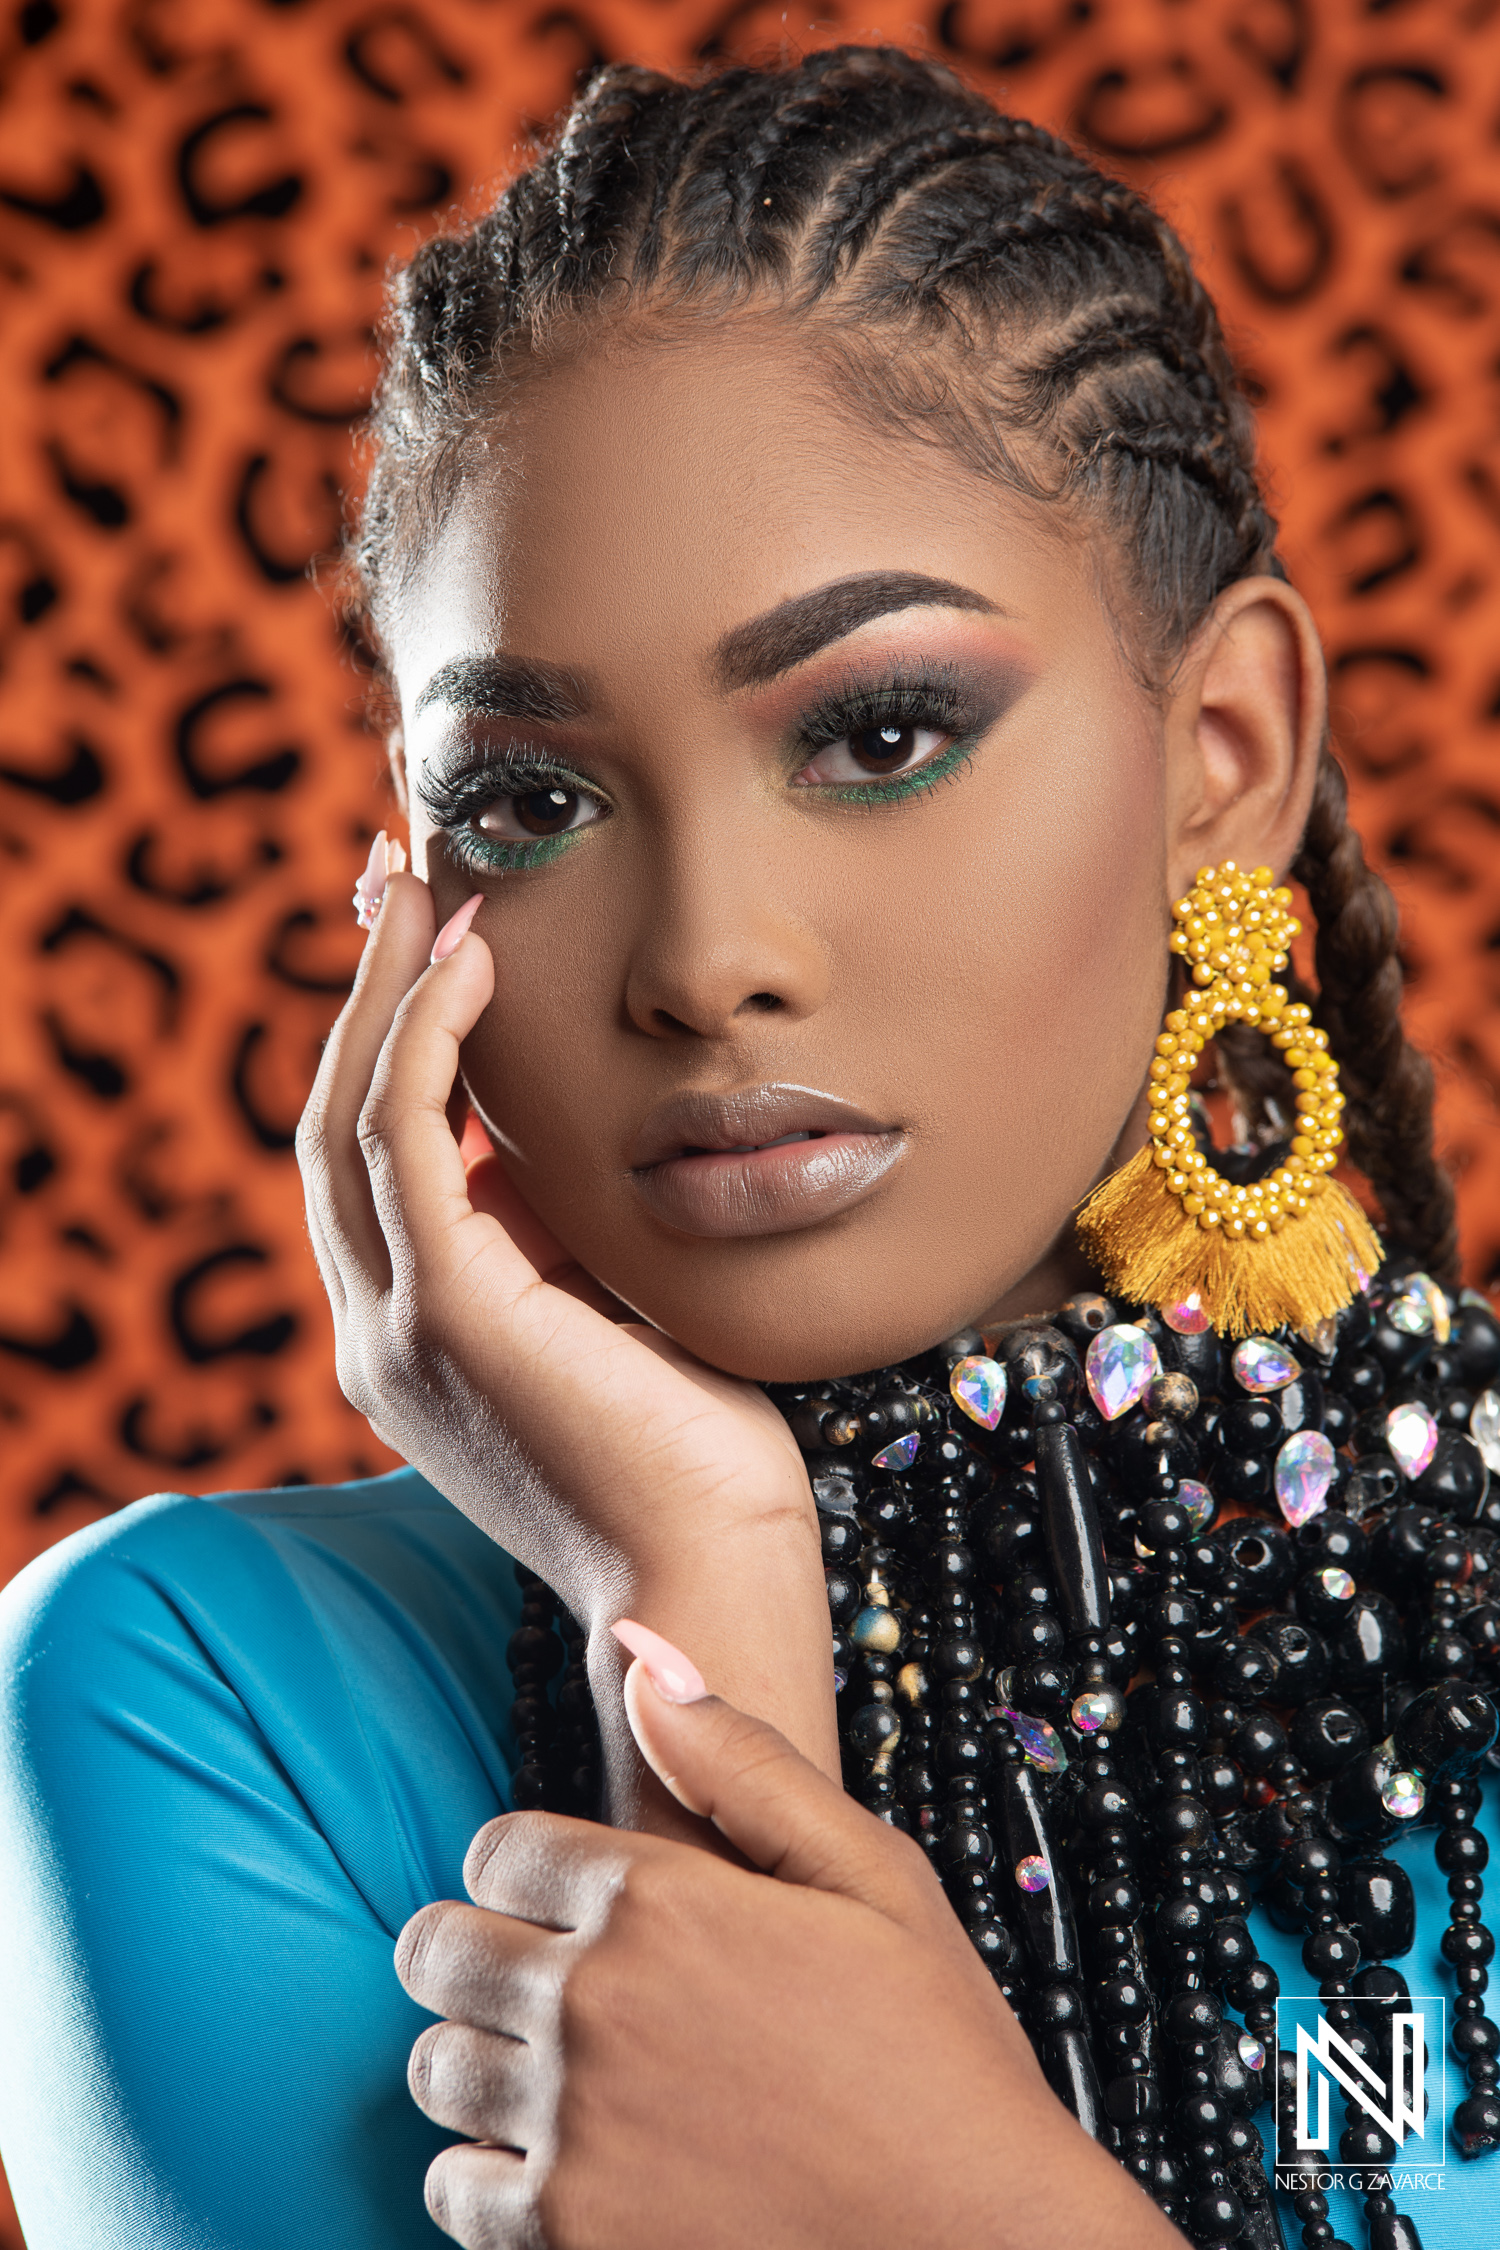 Miss Curacao Teenager 2019 | Face shot - Nestor G Zavarce Photo & Film